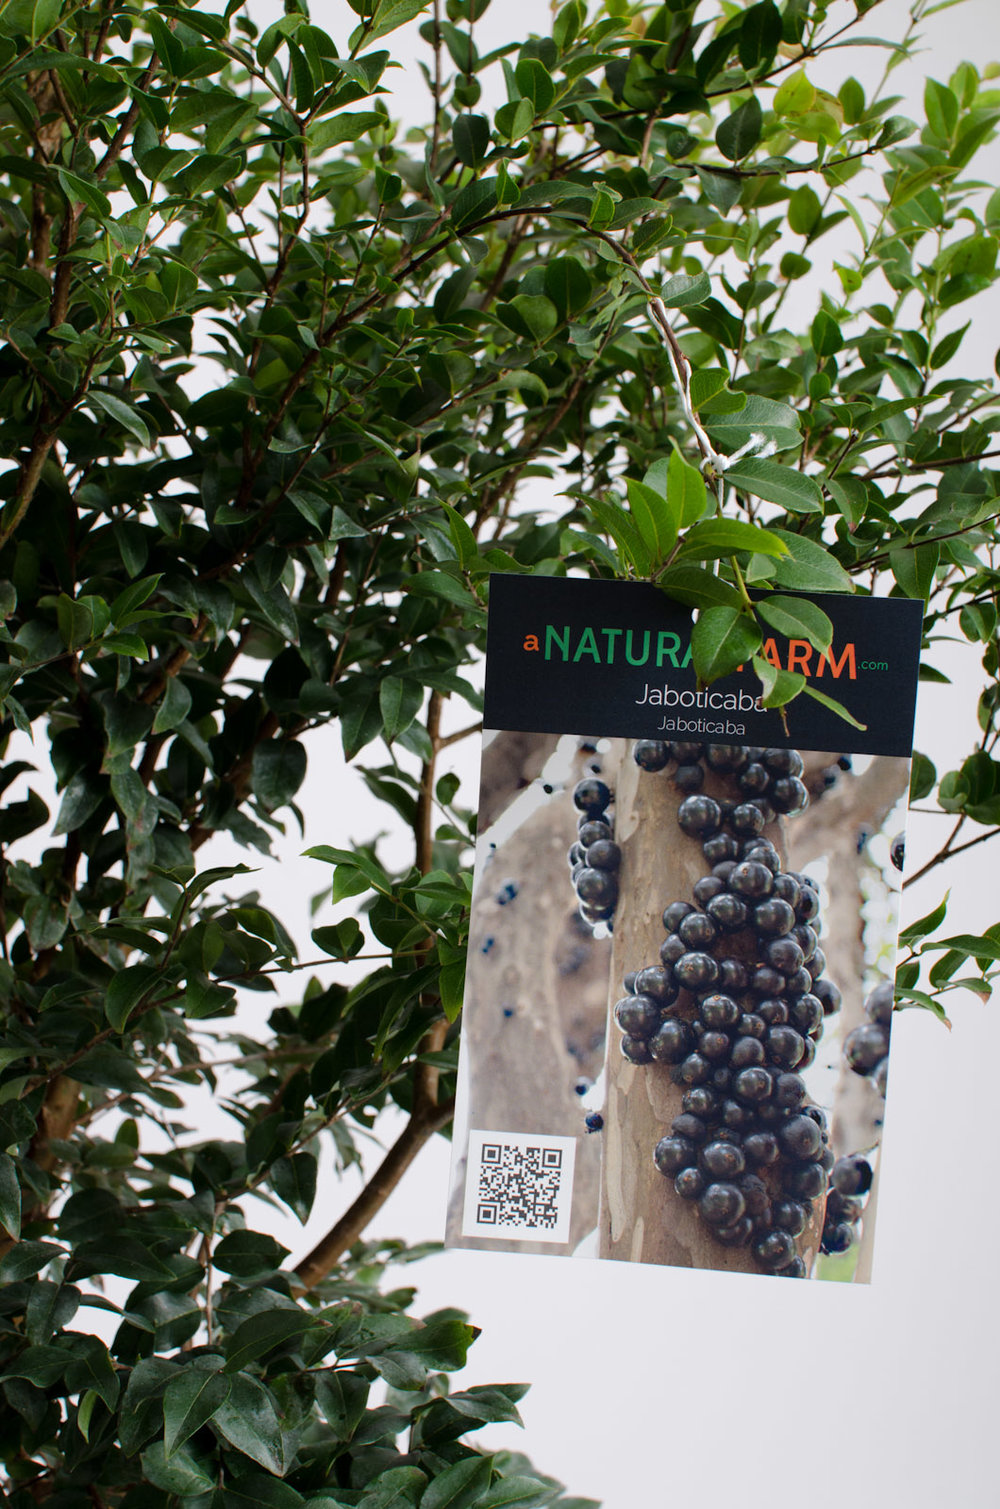 jaboticaba-commerce-6620.jpg